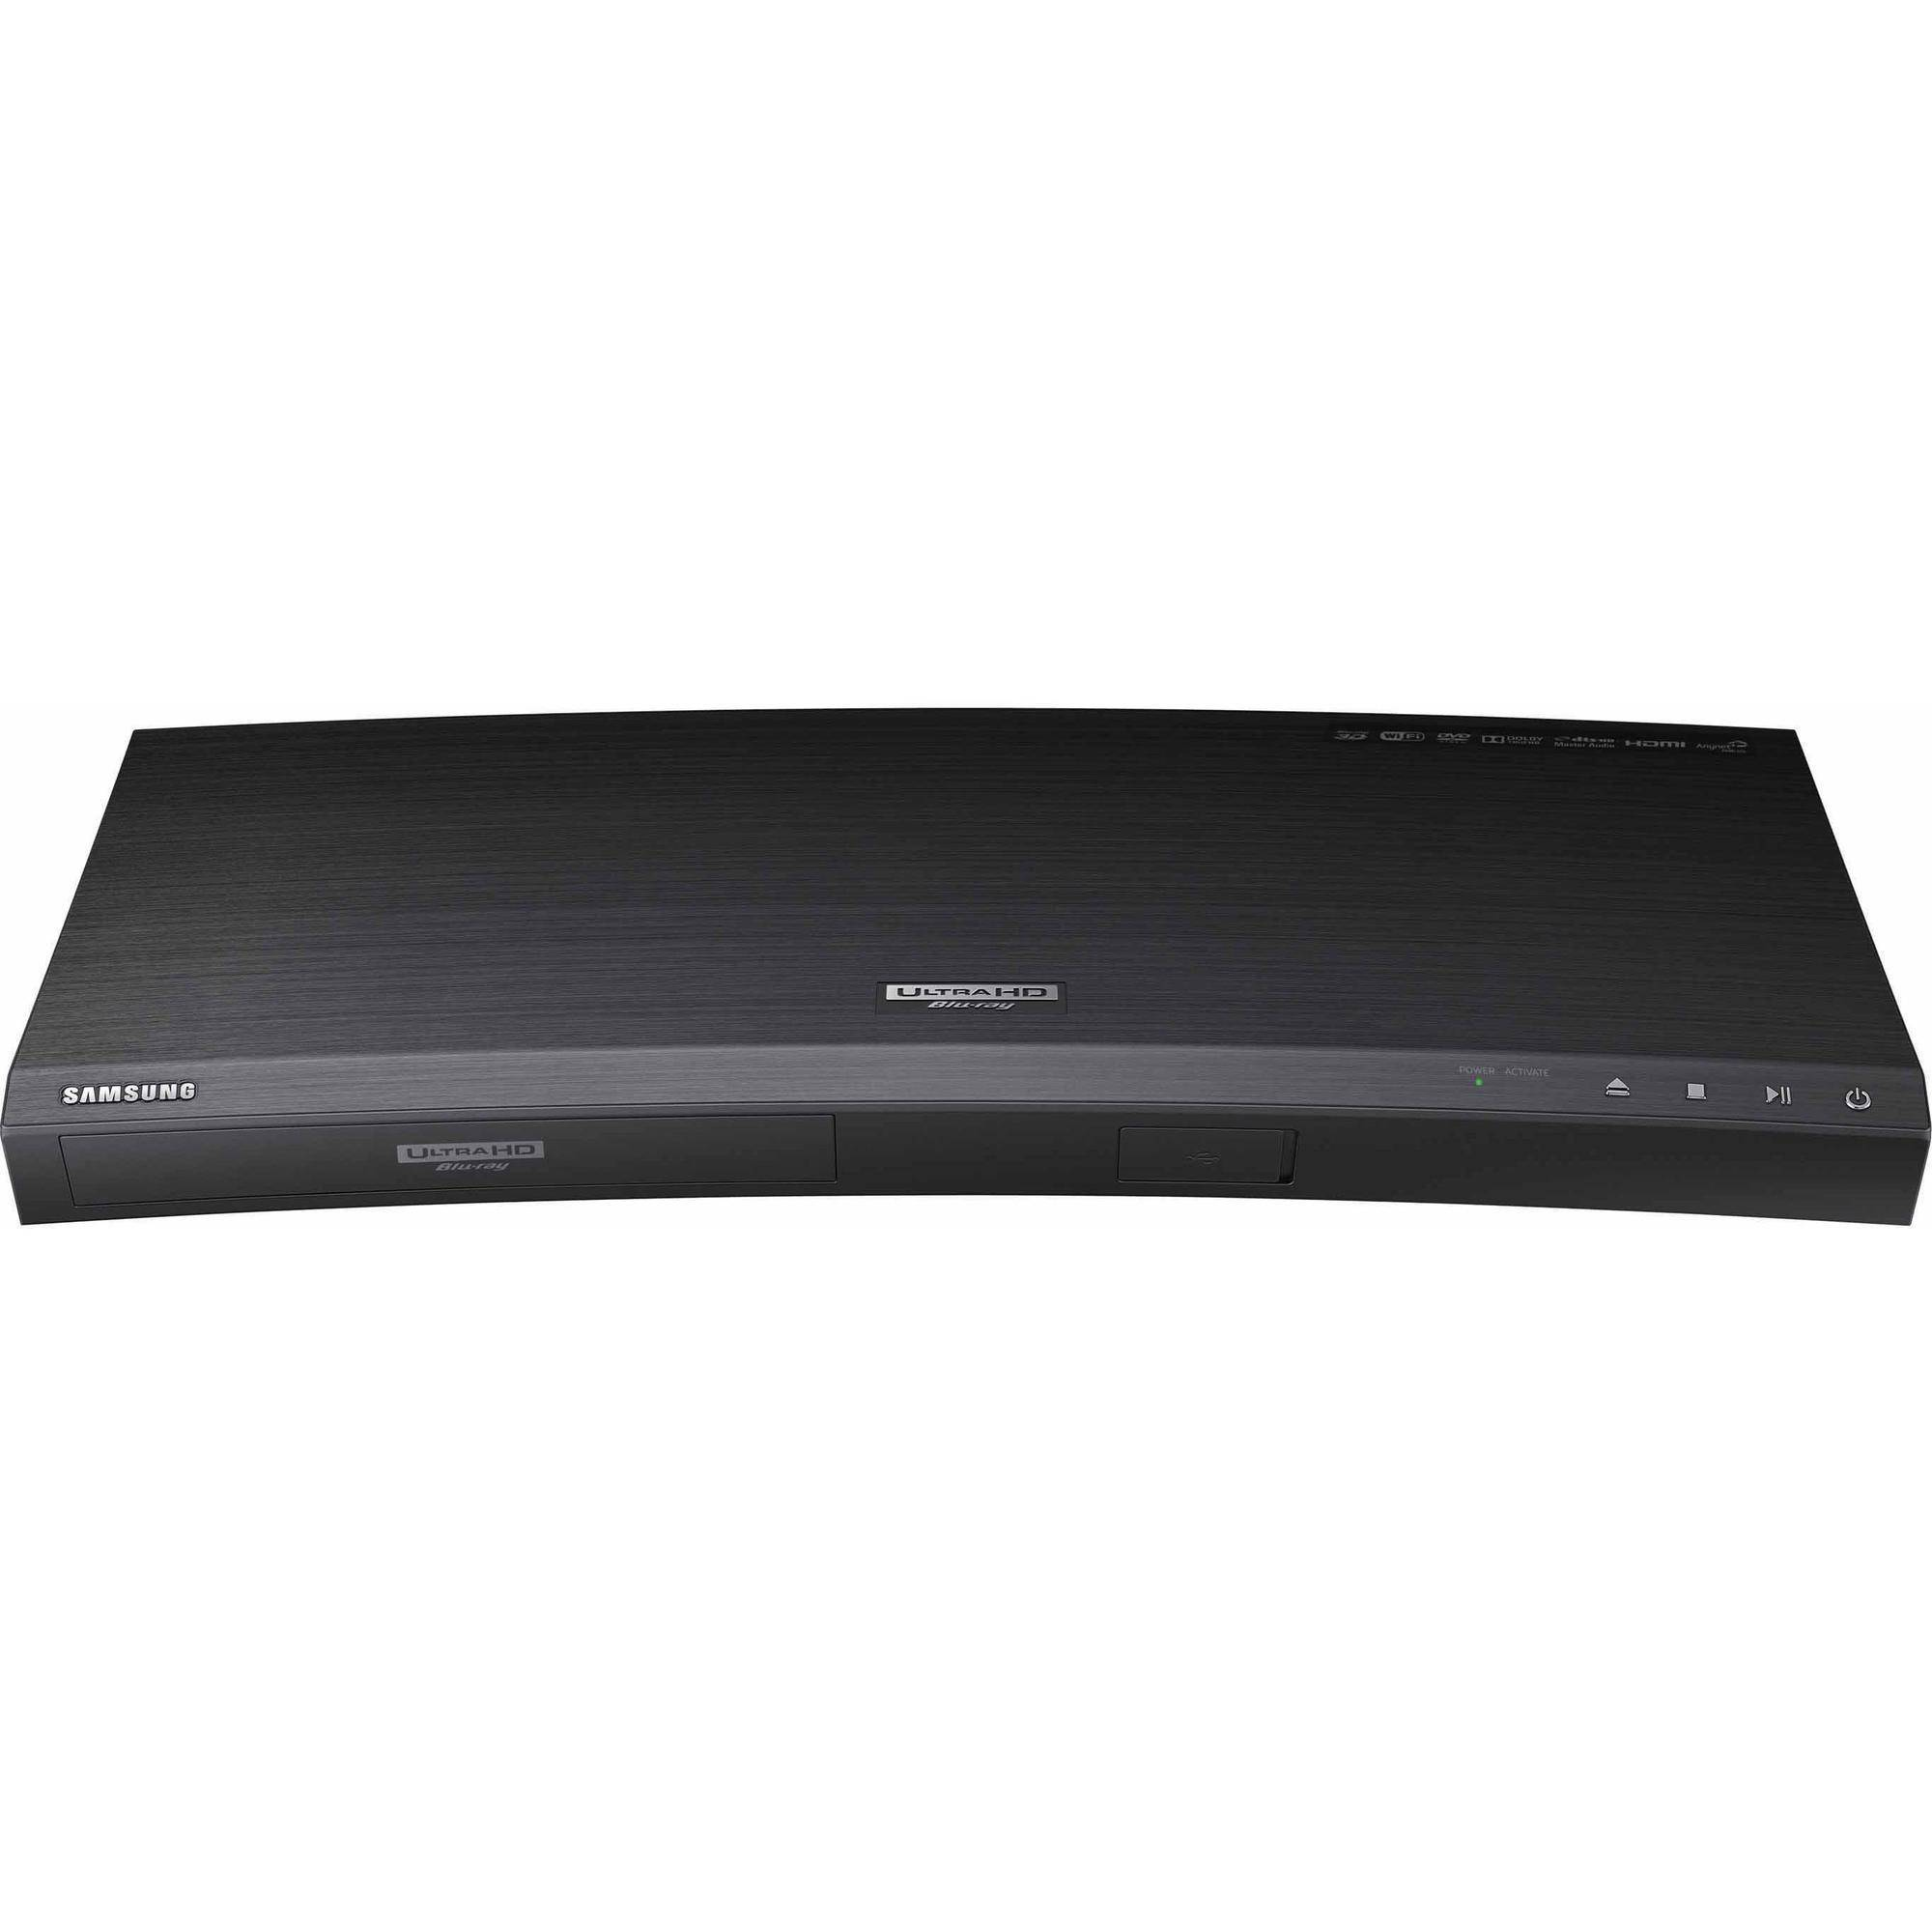 Samsung UBD-K8500 4K Ultra HD Blu-ray & DVD Player with HDR and Wi-Fi Streaming by Samsung